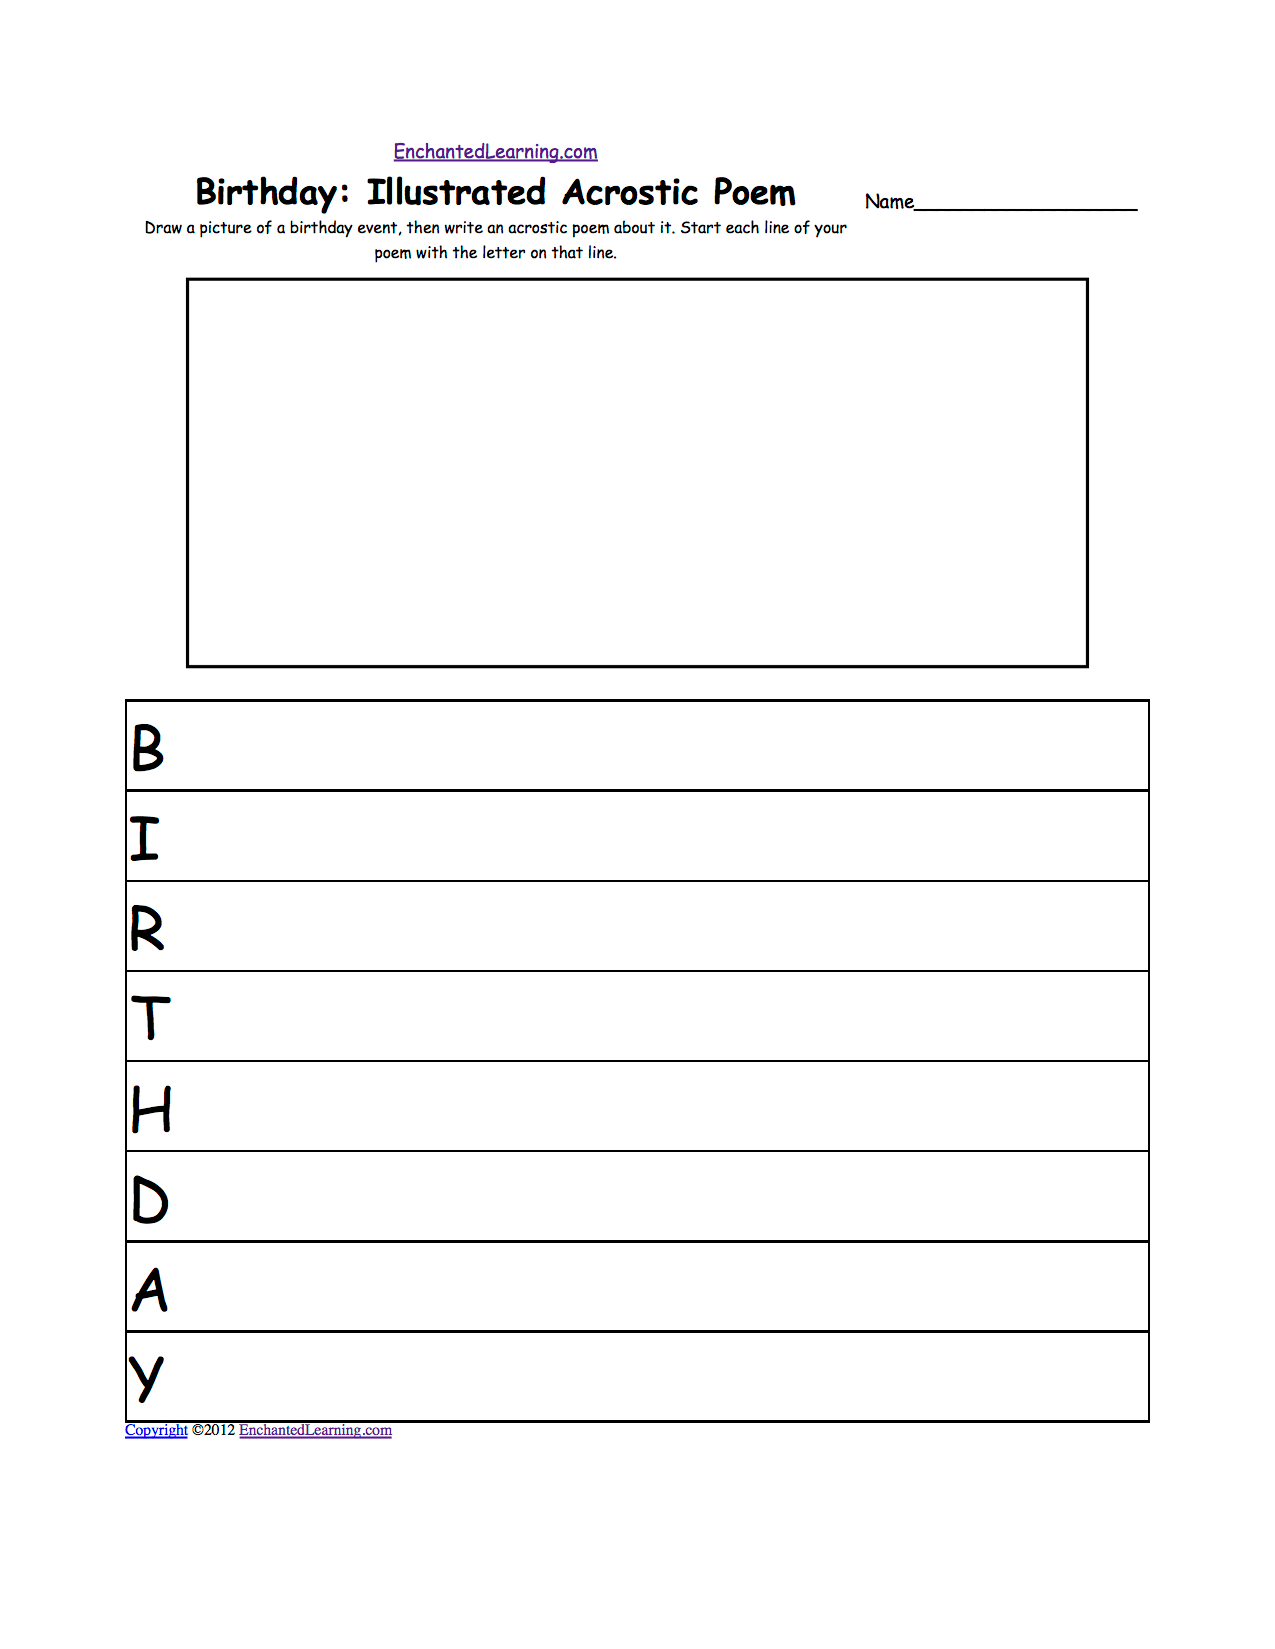 Licoln Birthday Worksheet